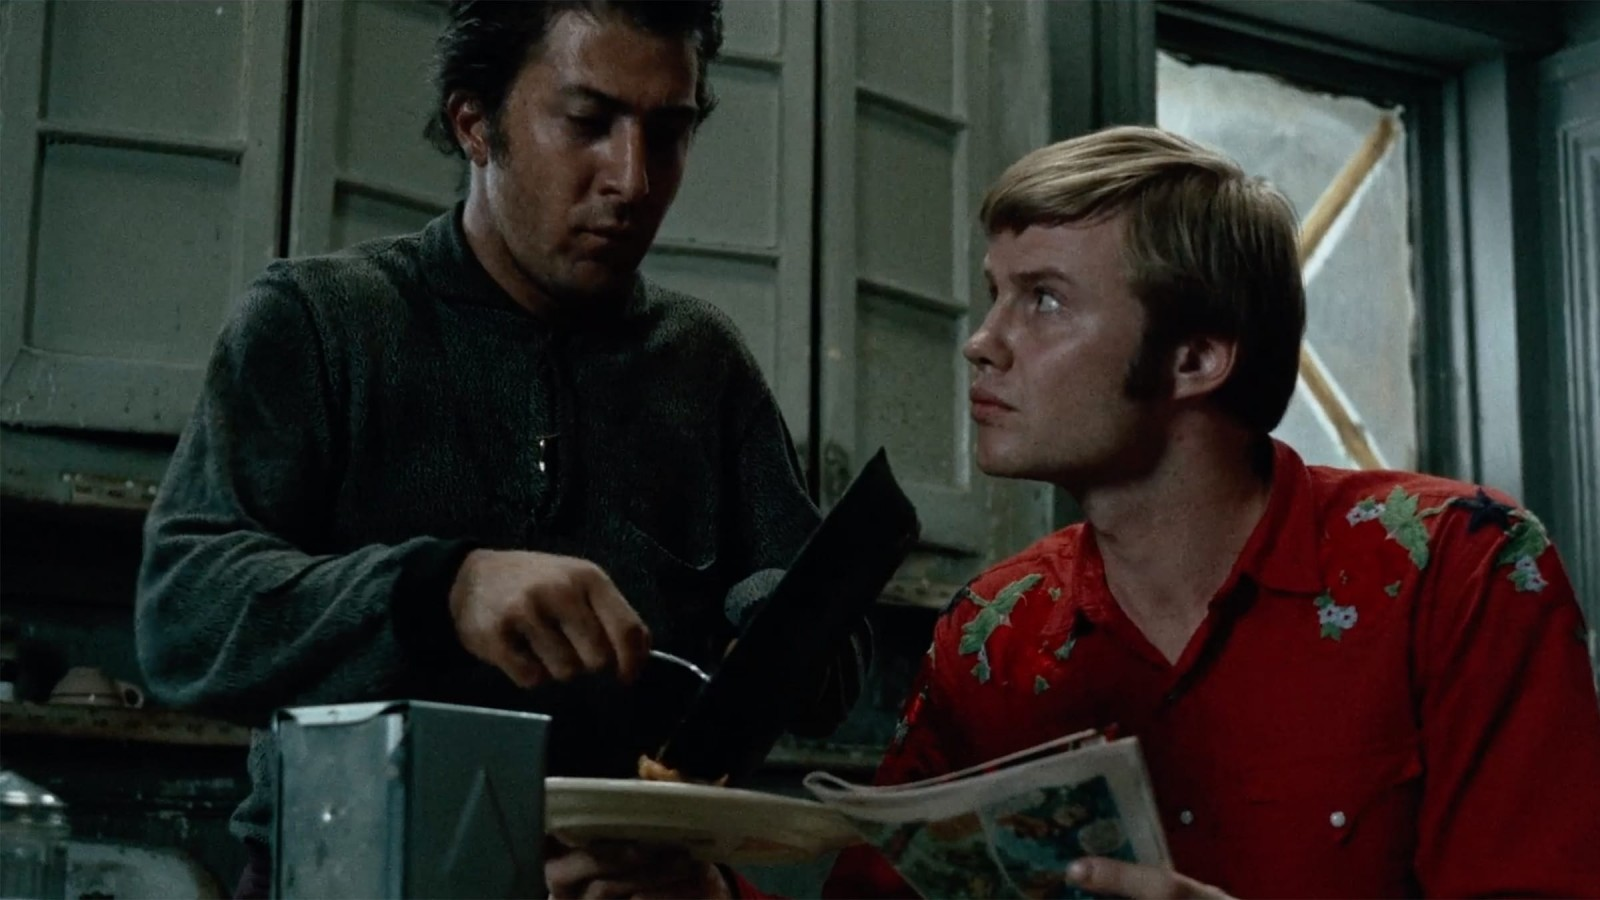 Chosen Family: The Tenderness in Midnight Cowboy